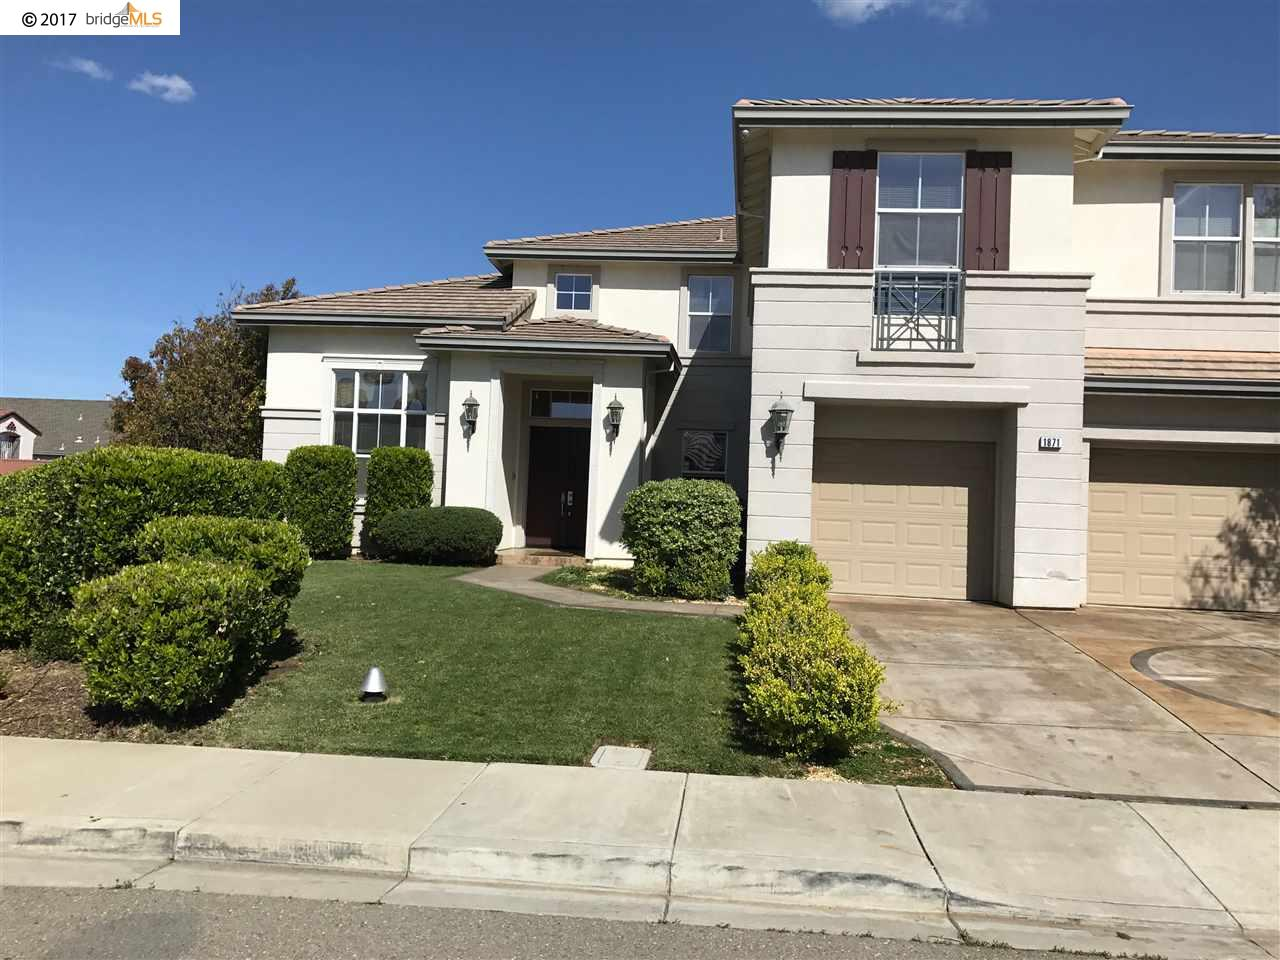 Maison unifamiliale pour l Vente à 1871 Table Mountain Court Antioch, Californie 94531 États-Unis